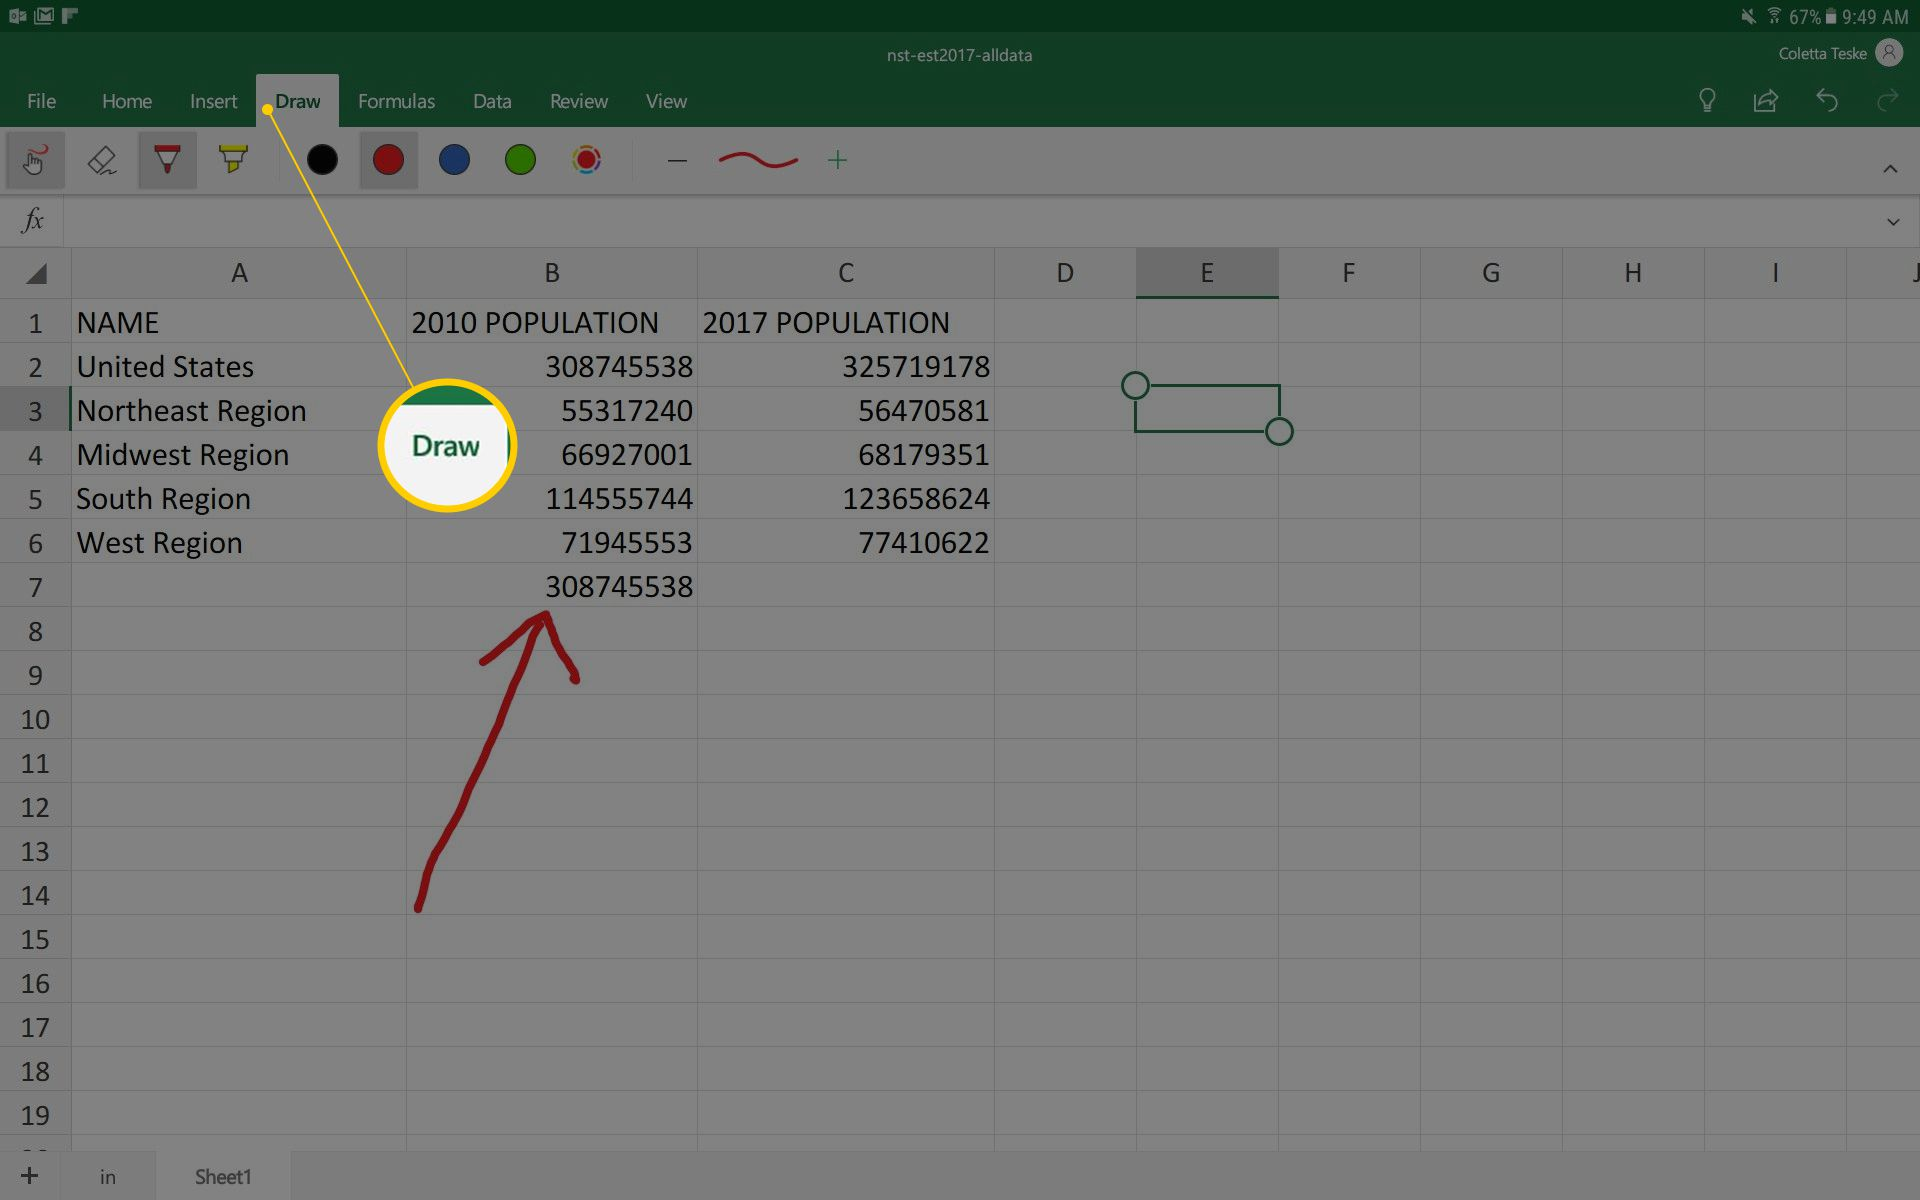 A screenshot showing the drawing tools in Microsoft Excel app for Android